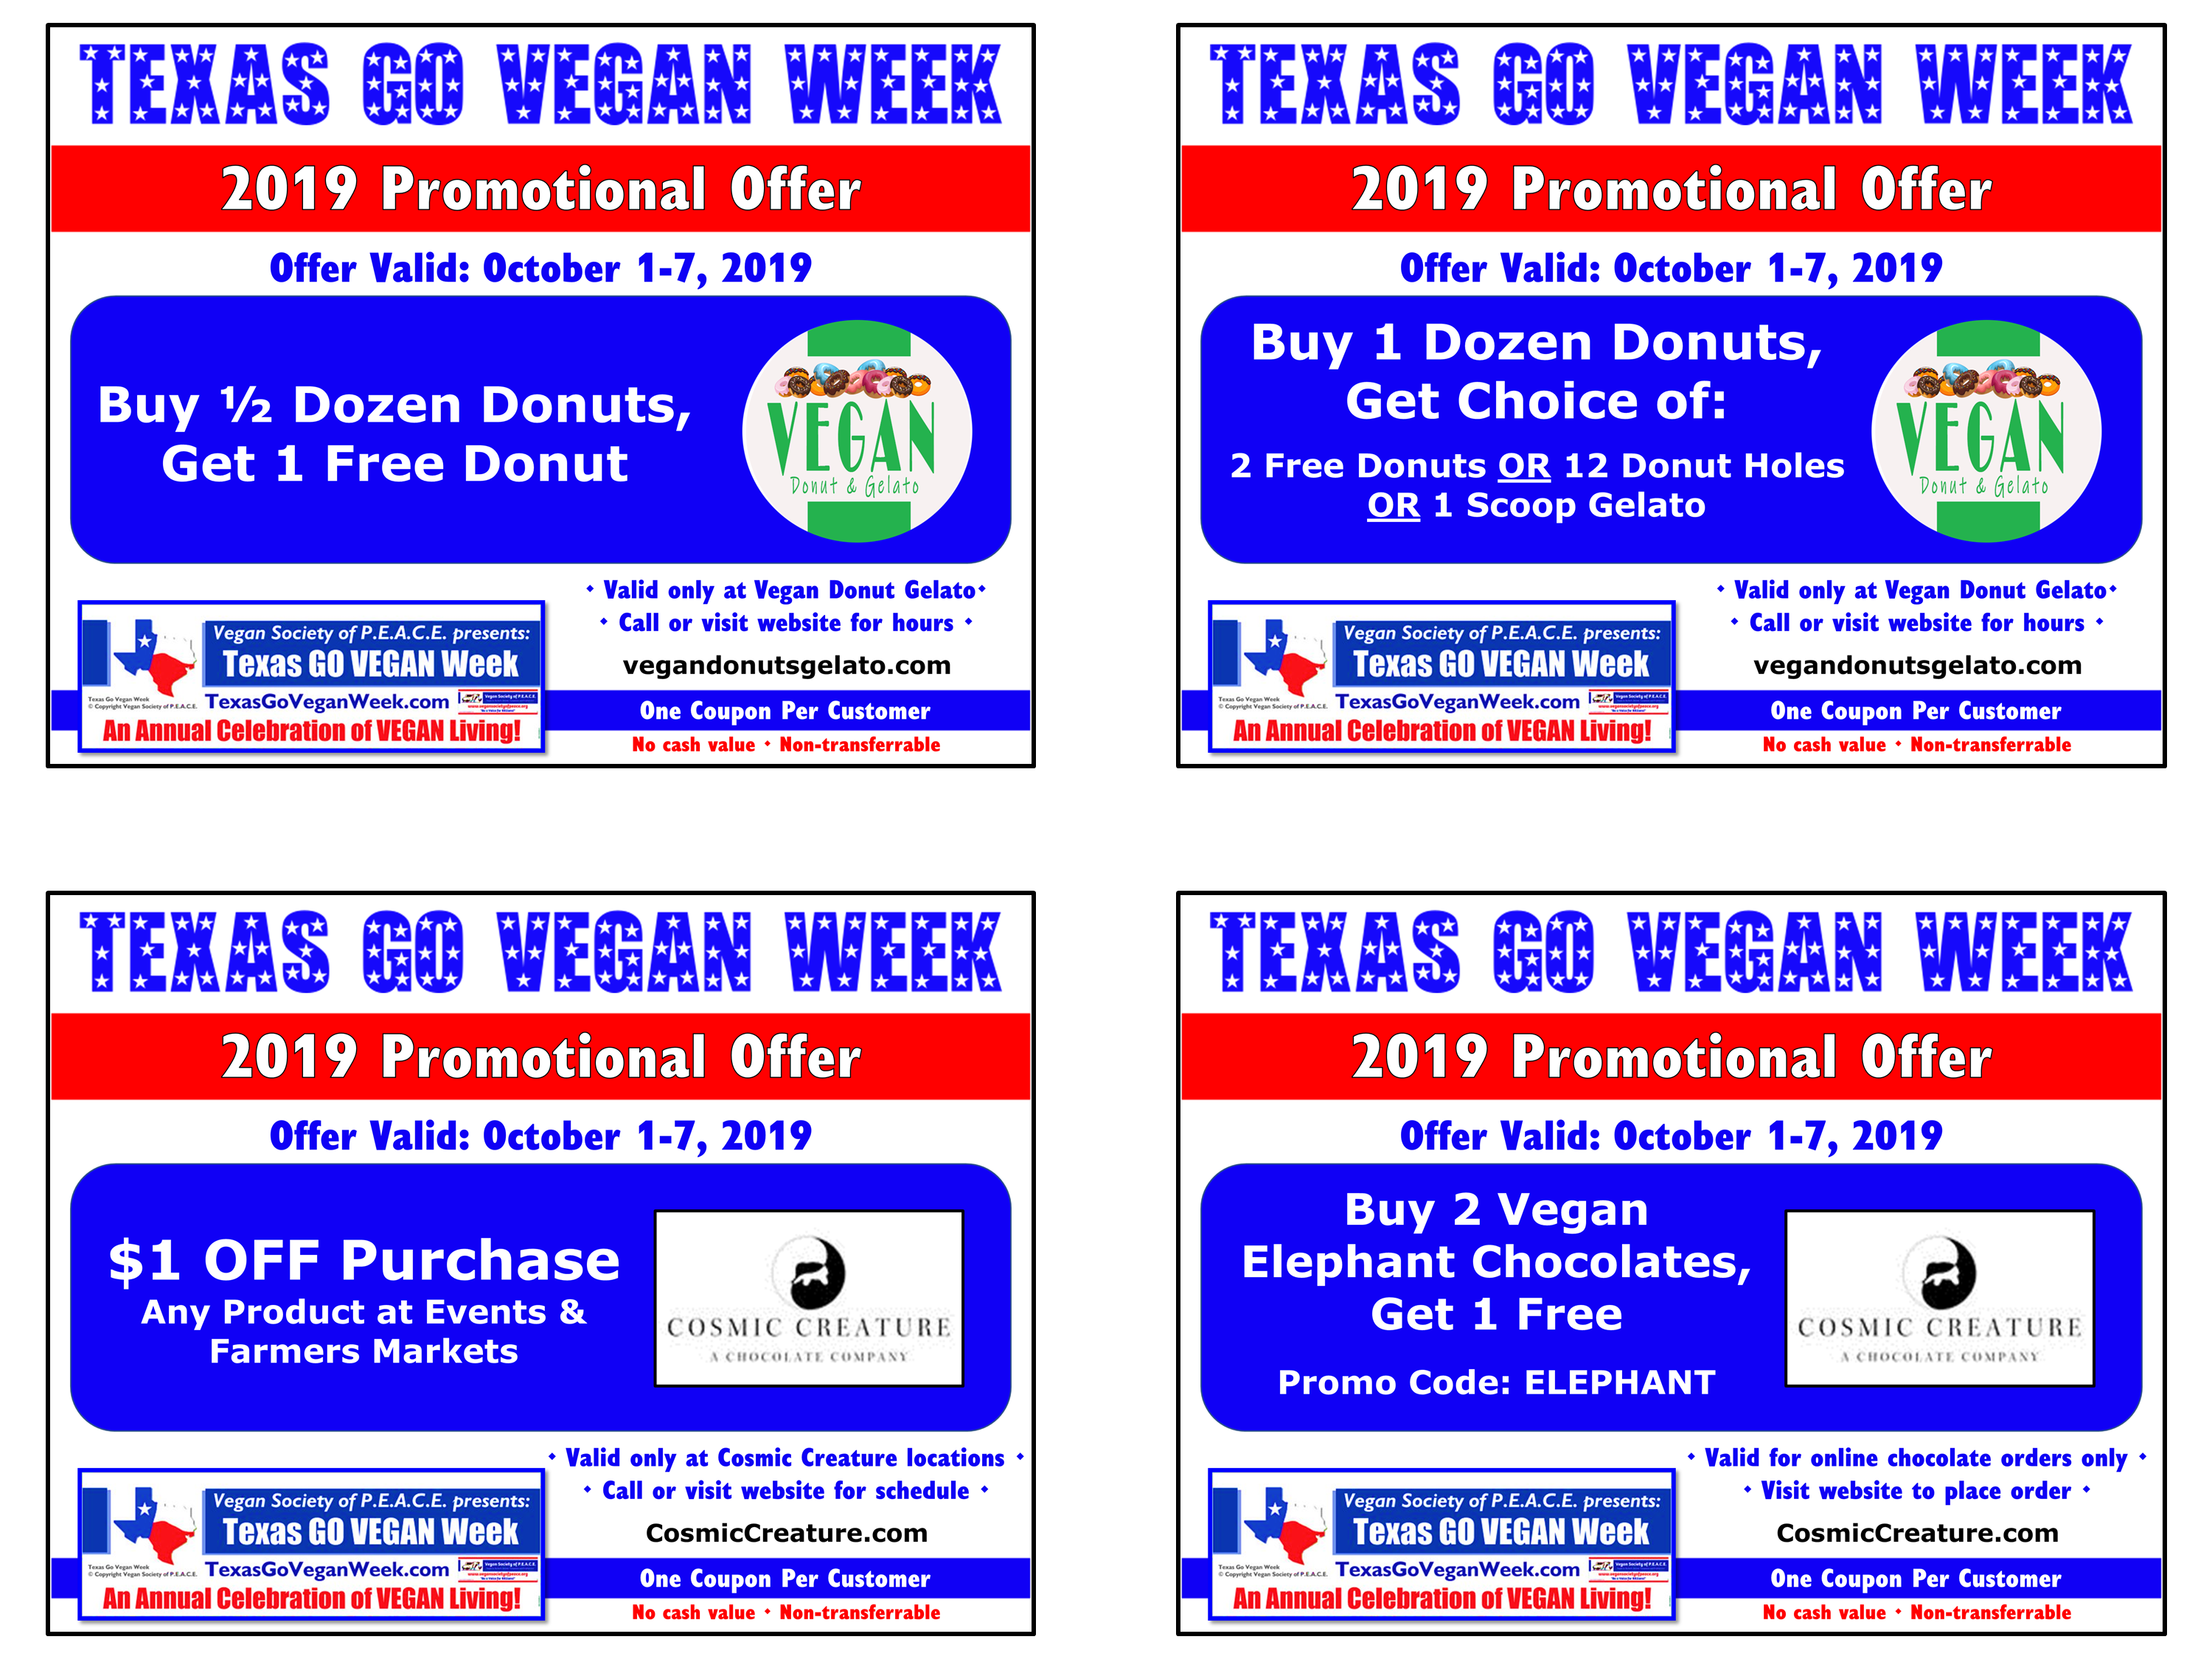 Texas Go Vegan Week 2019 Coupons 9-12